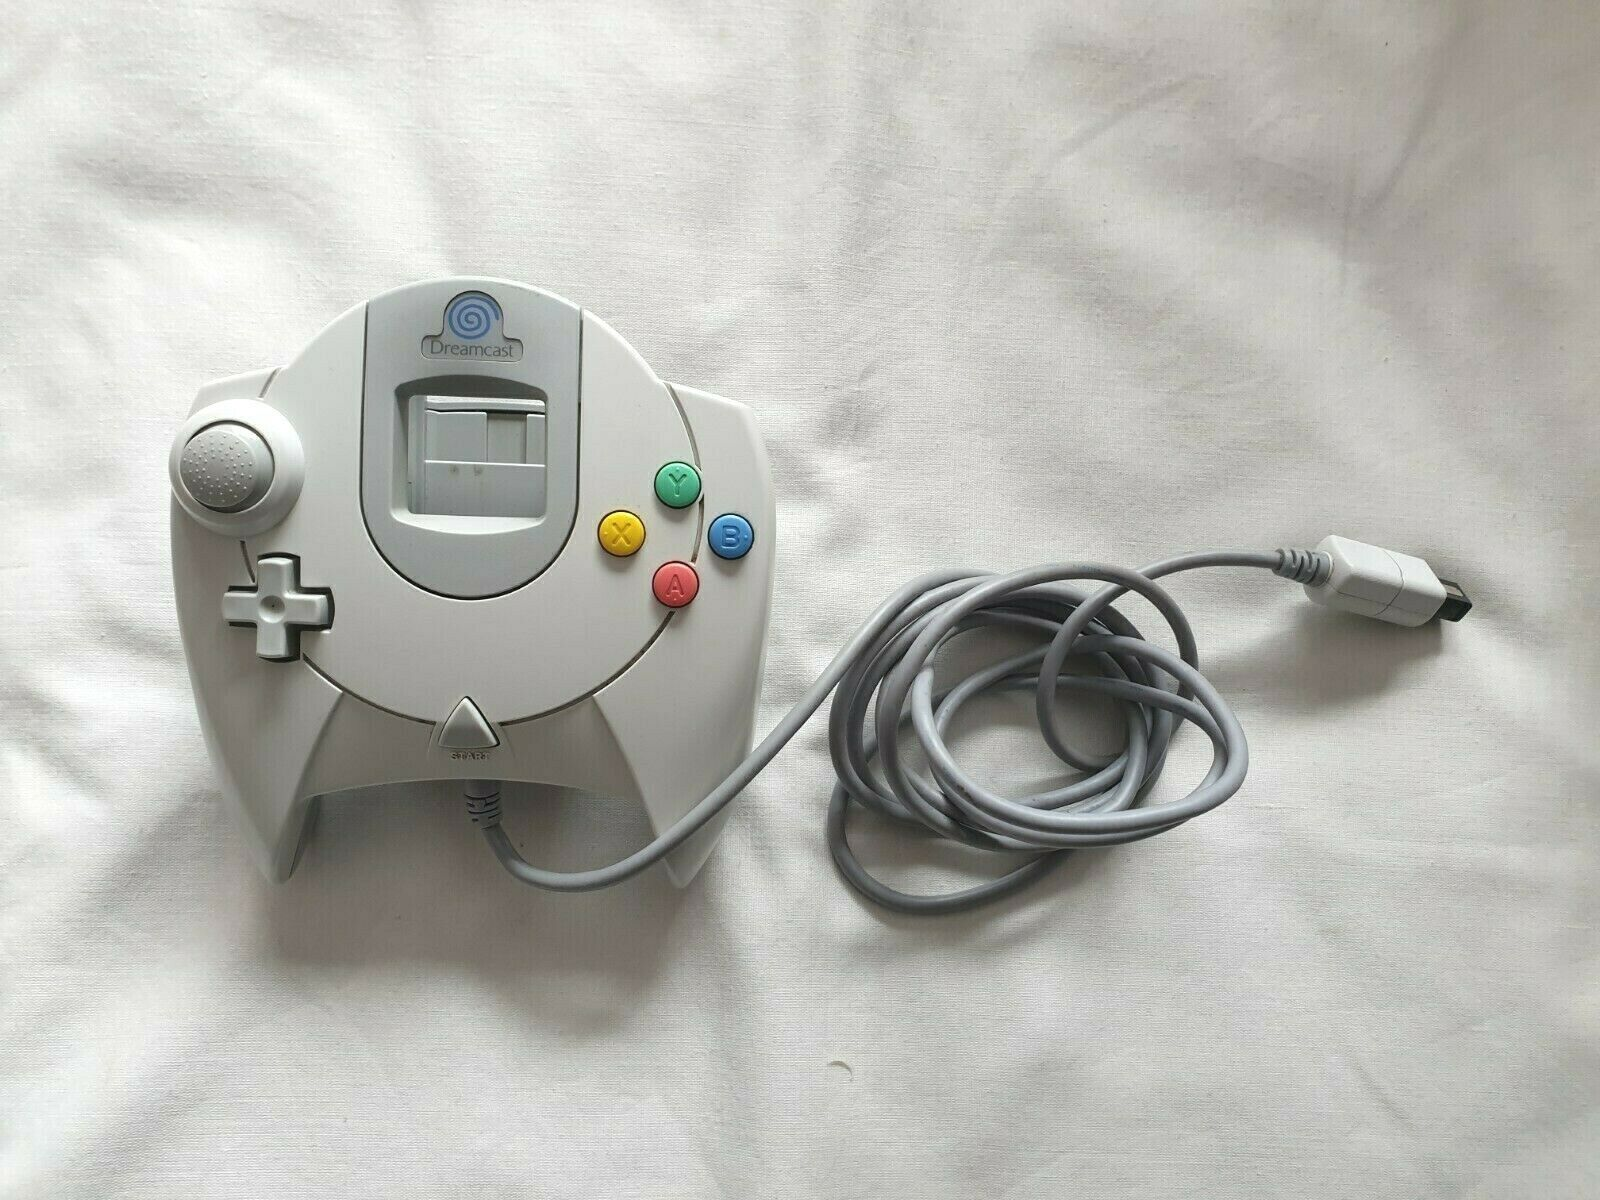 Sega Dreamcast Game Pad / Controller - Fully Tested & Working